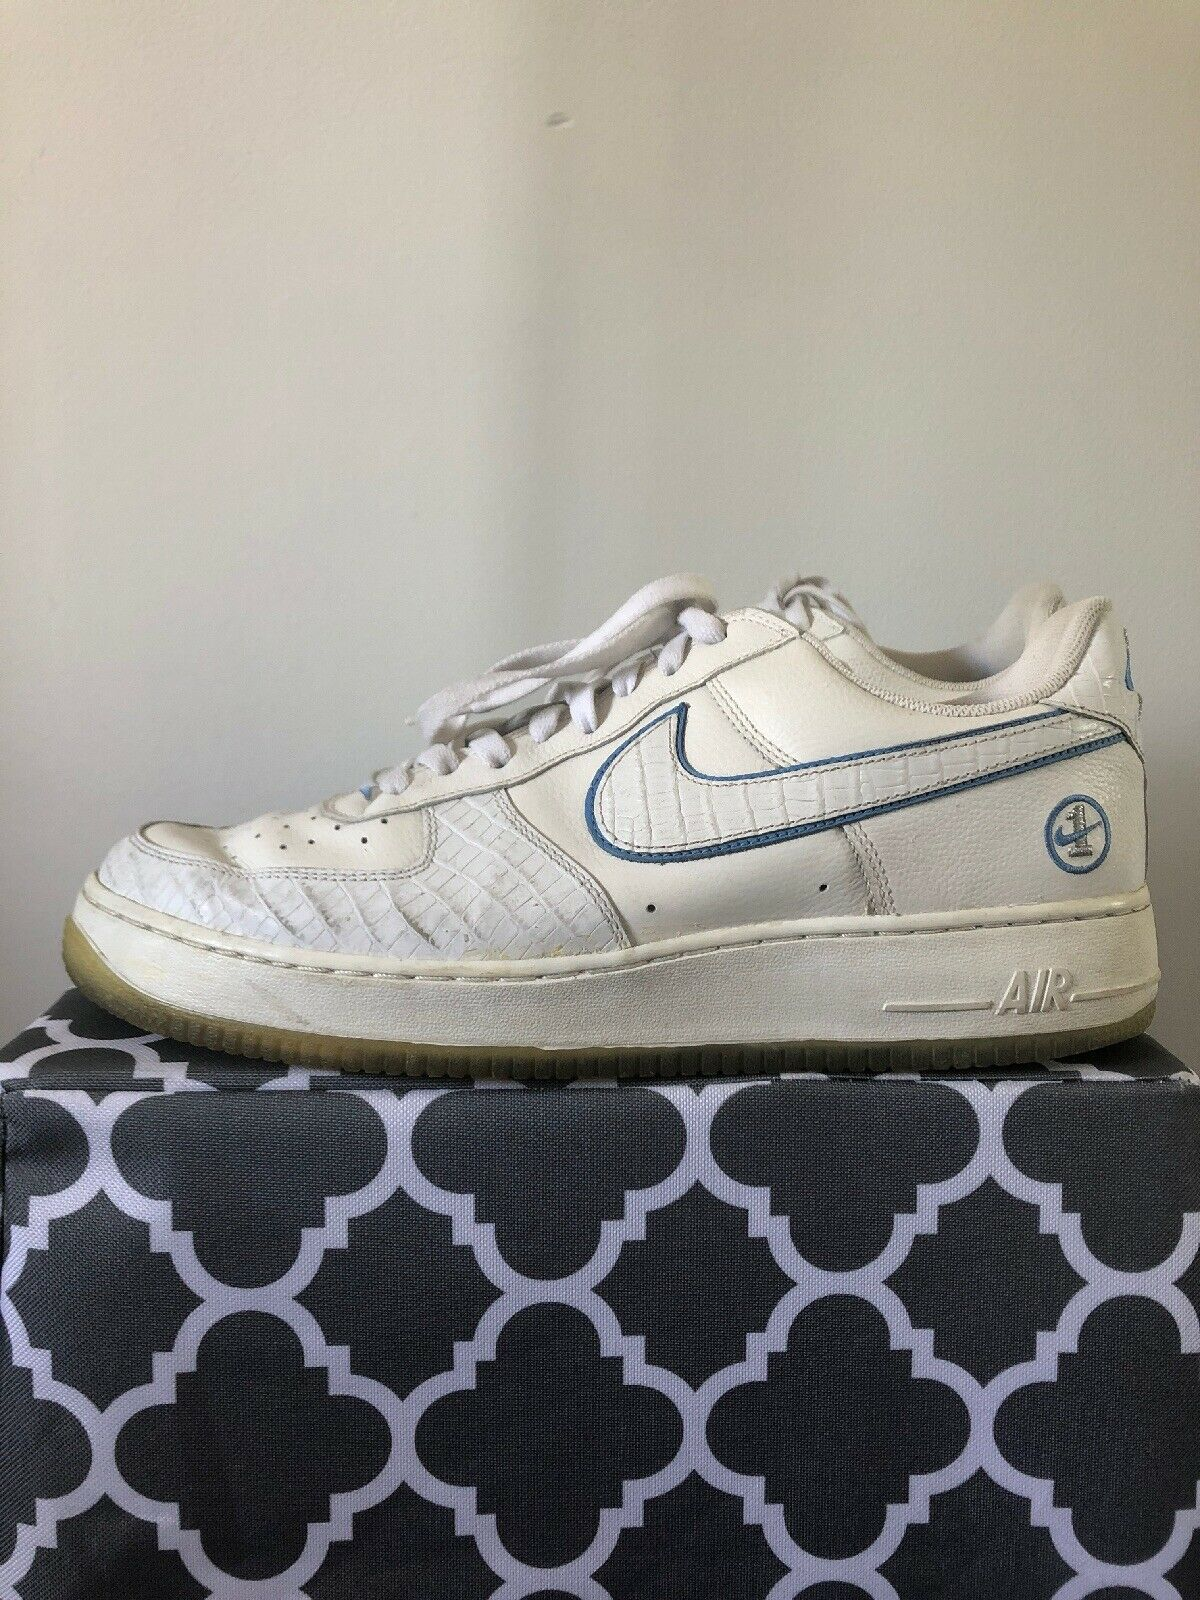 Nike Air Force 1 bluee And White Mens Size 12